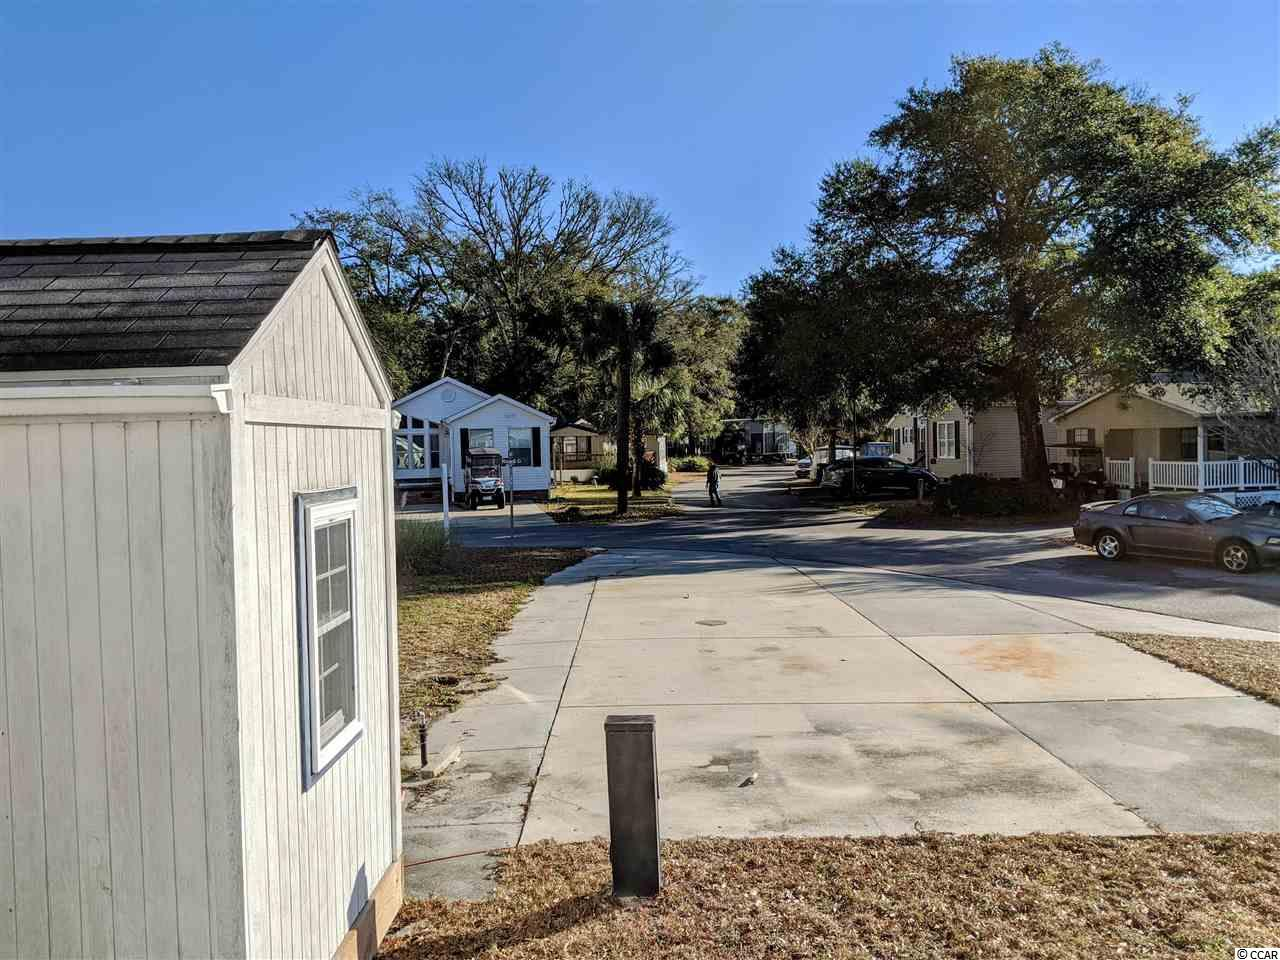 "Looking to begin ""Living The Salt Life"" - this great corner lot is positioned across the street from the marsh in the Cherry Grove section of NMB in the MB RV Resort.  After a day on the beach, you will enjoy the breeze right off of the ocean with the water just steps away.  This lot is perfect for a park model or parking your RV.  This is your chance for a beach getaway of your very own.  The MB RV Resort community offers 2 swimming pools, a basketball court, access to the marsh for fishing and kayaking, a club house and an activity center.  The HOA fees cover water, sewer, trash, cable, internet and access to these great amenities."